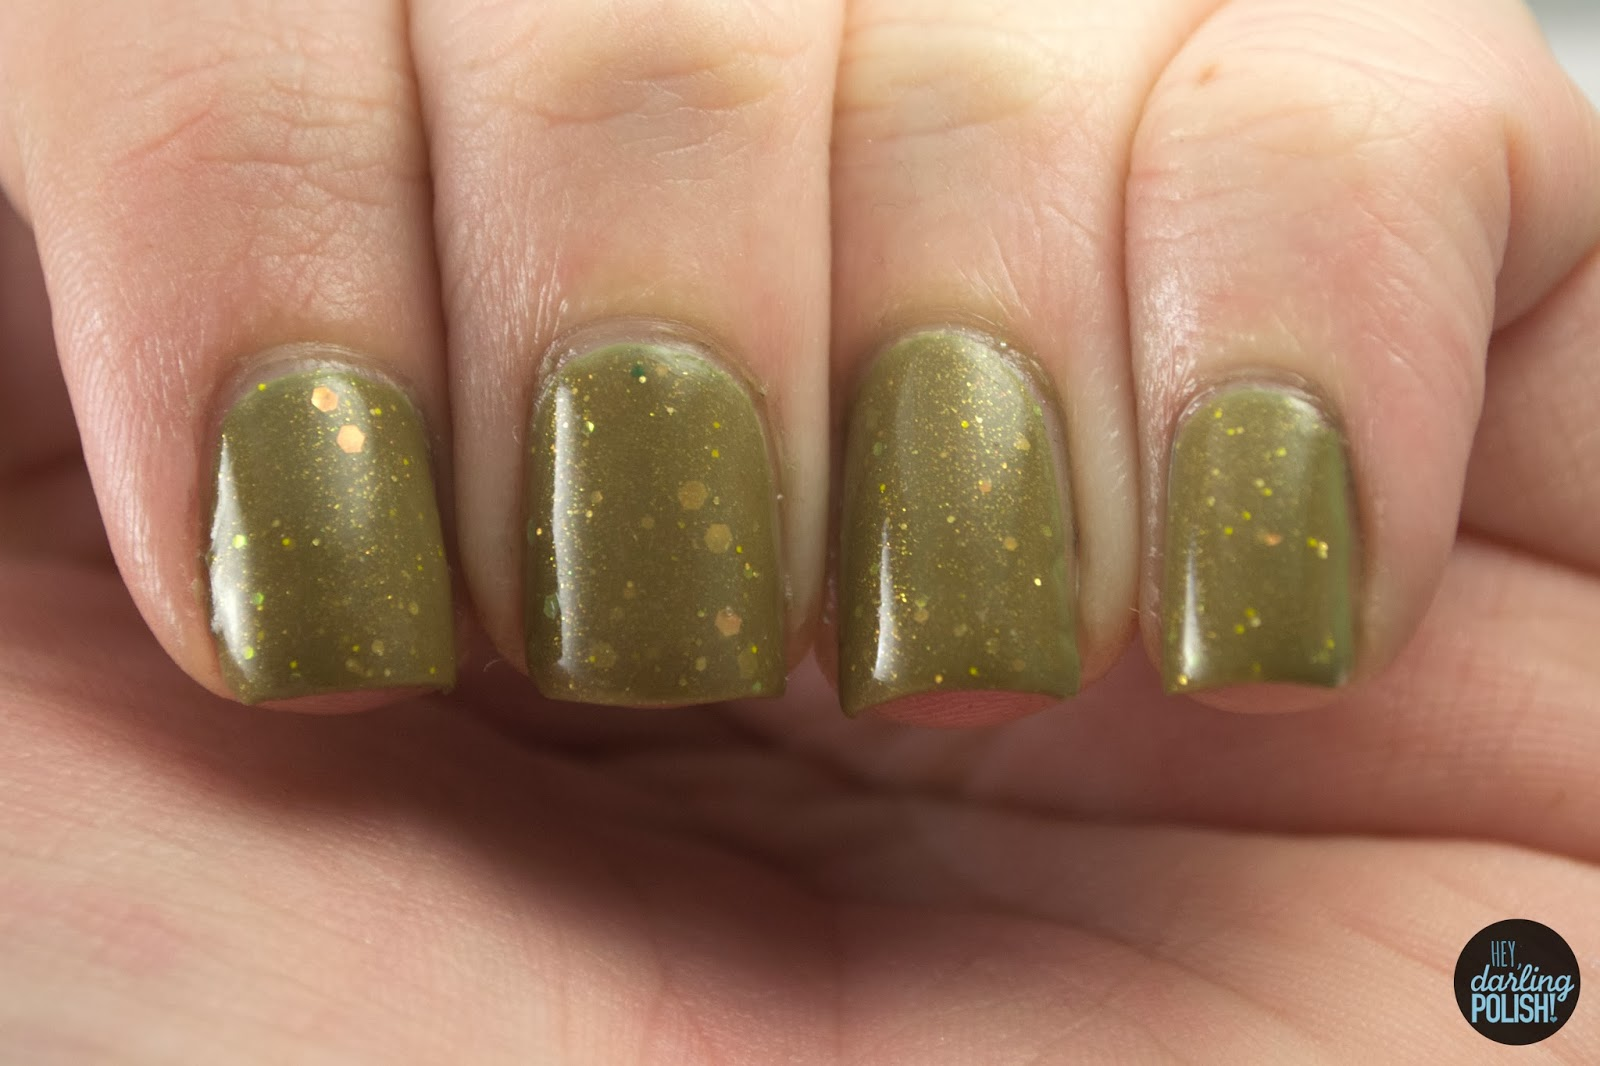 nails, nail polish, polish, indie, indie polish, coated in polish, army green, green, going to war, gold, hey darling polish